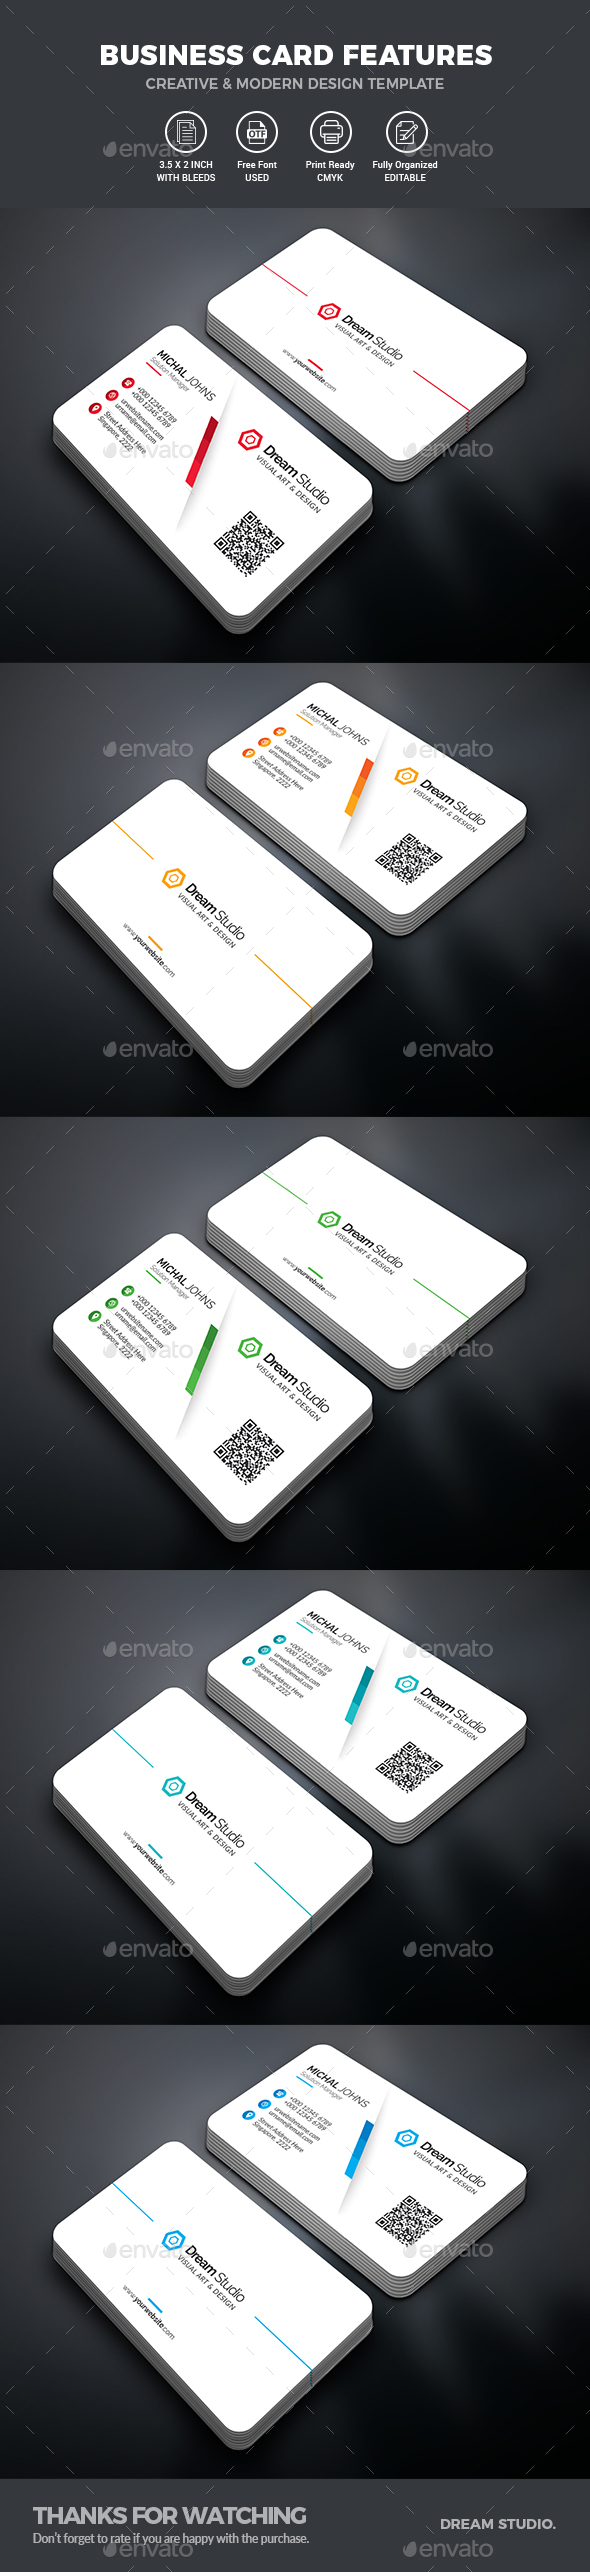 Business Cards - Creative Business Cards